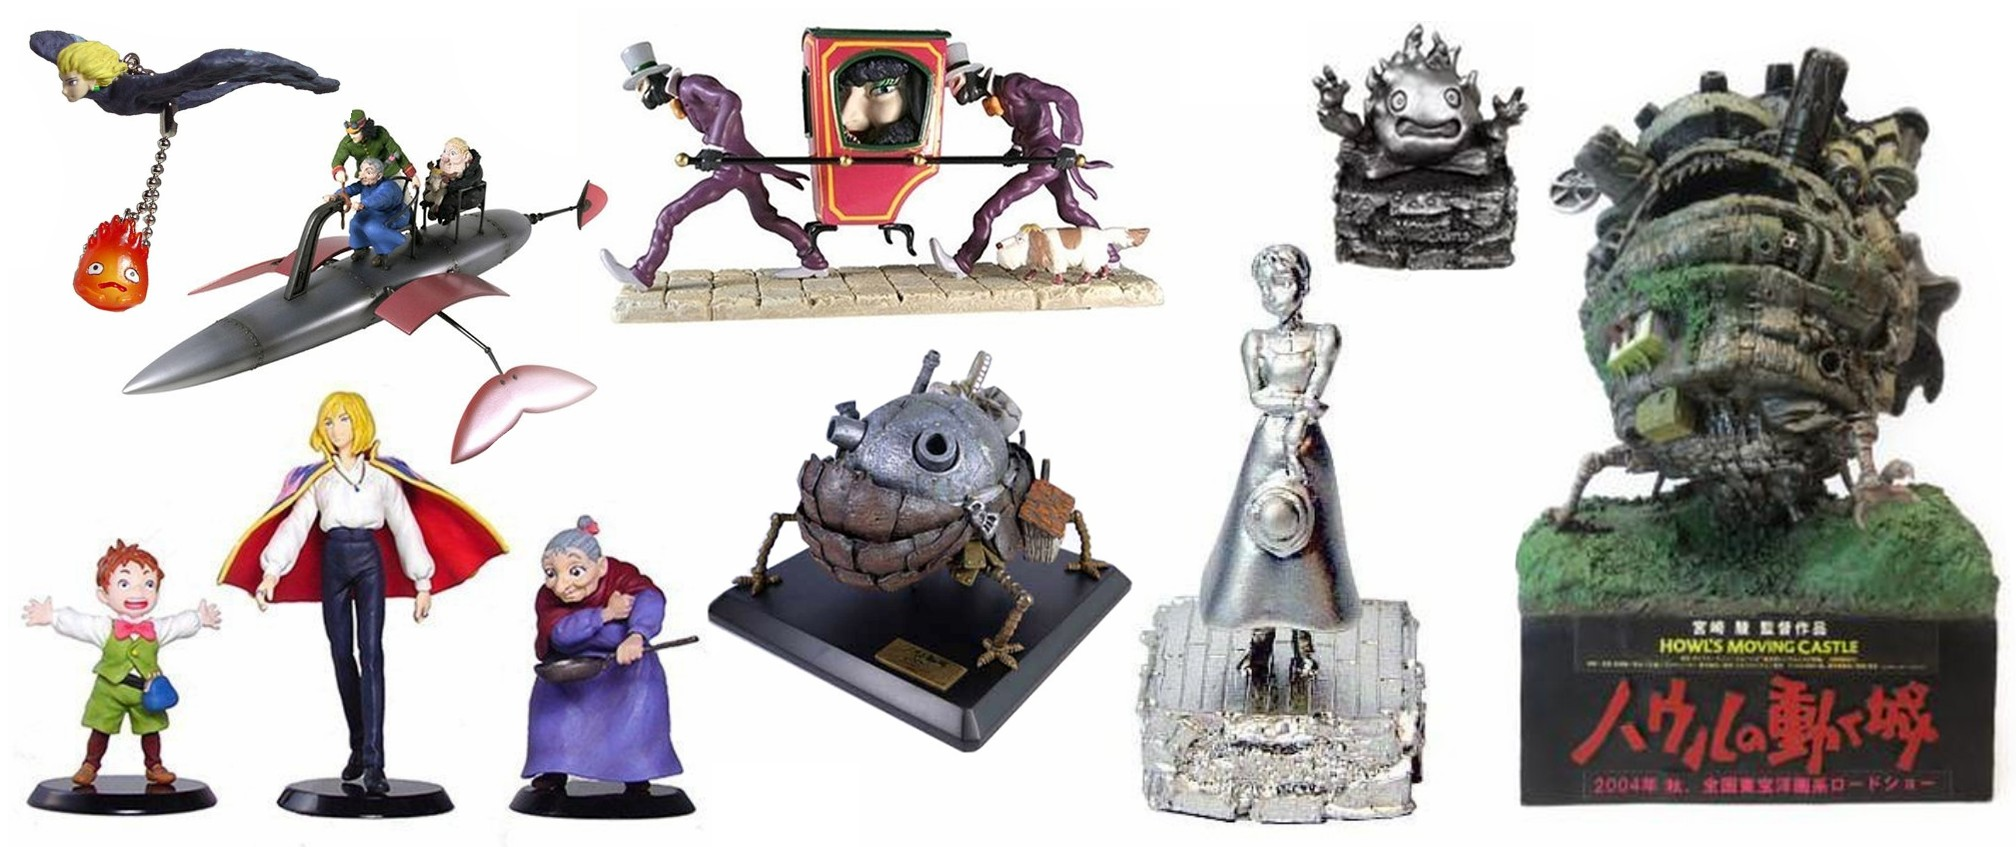 Howl's Moving Castle Figurines